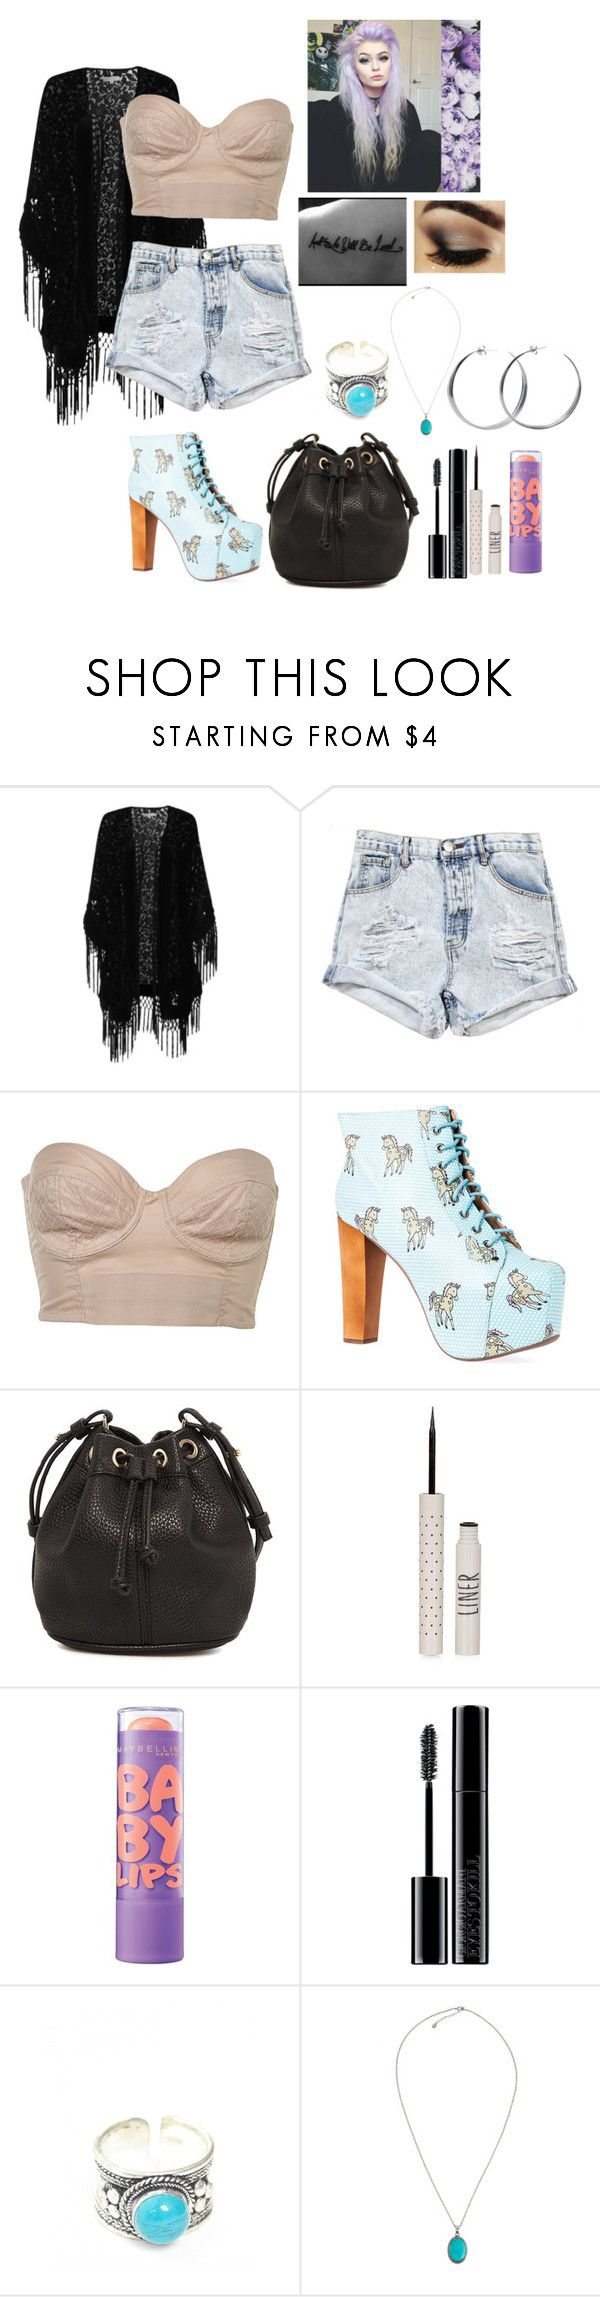 """Hold on there will be tomorrow I'm time you'll find the way"" by sophstar2000 ❤ liked on Polyvore featuring True Decadence, OneTeaspoon, Jeffrey Campbell, MANGO, Topshop, Maybelline, Giorgio Armani, Shop Dixi, Accessorize and Coco's Liberty"